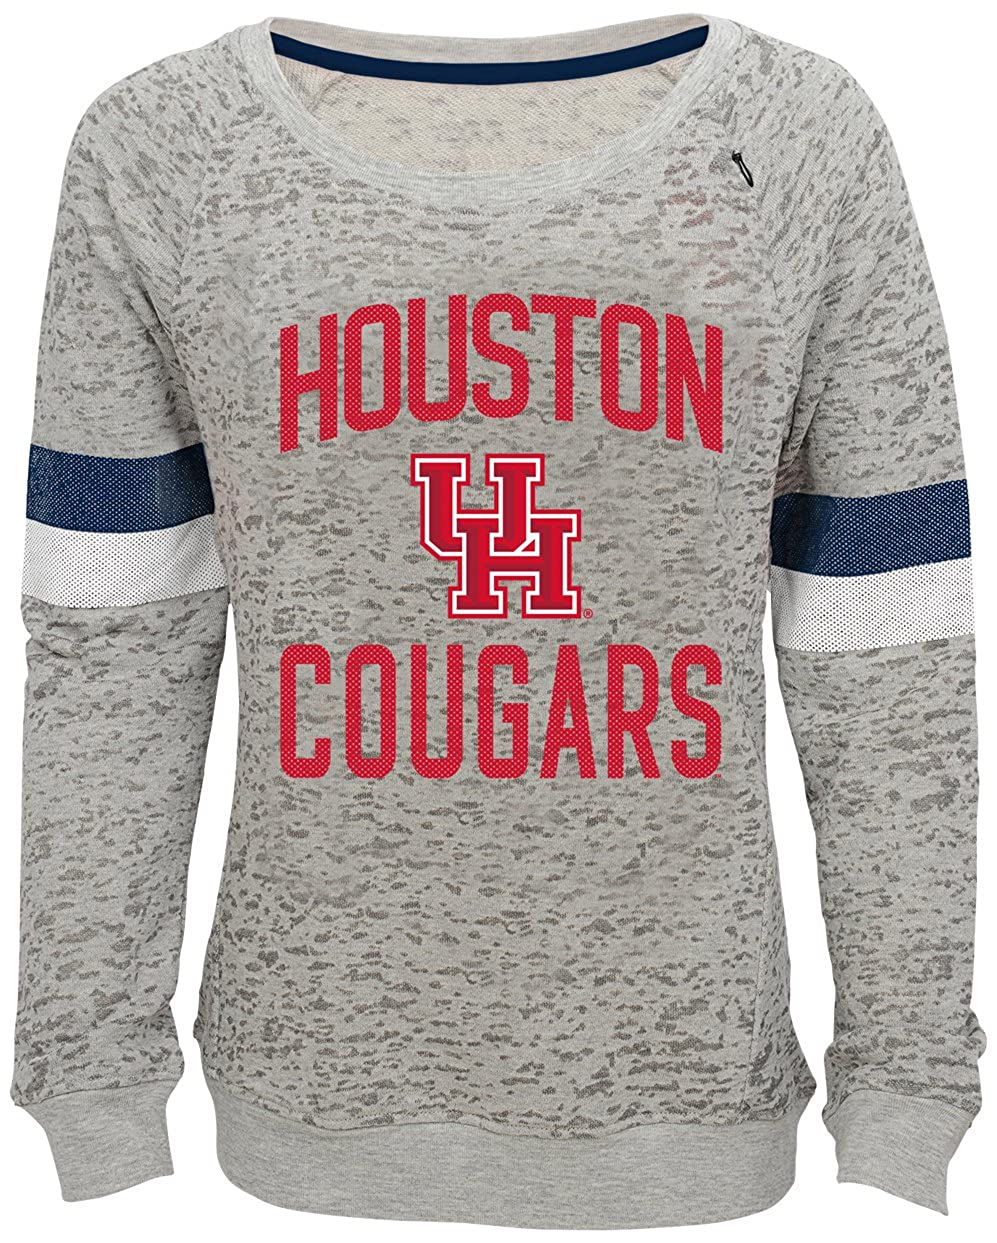 Youth Medium 10-12 NCAA by Outerstuff NCAA Houston Cougars Youth Girls My City Boat Neck Pullover Heather Grey